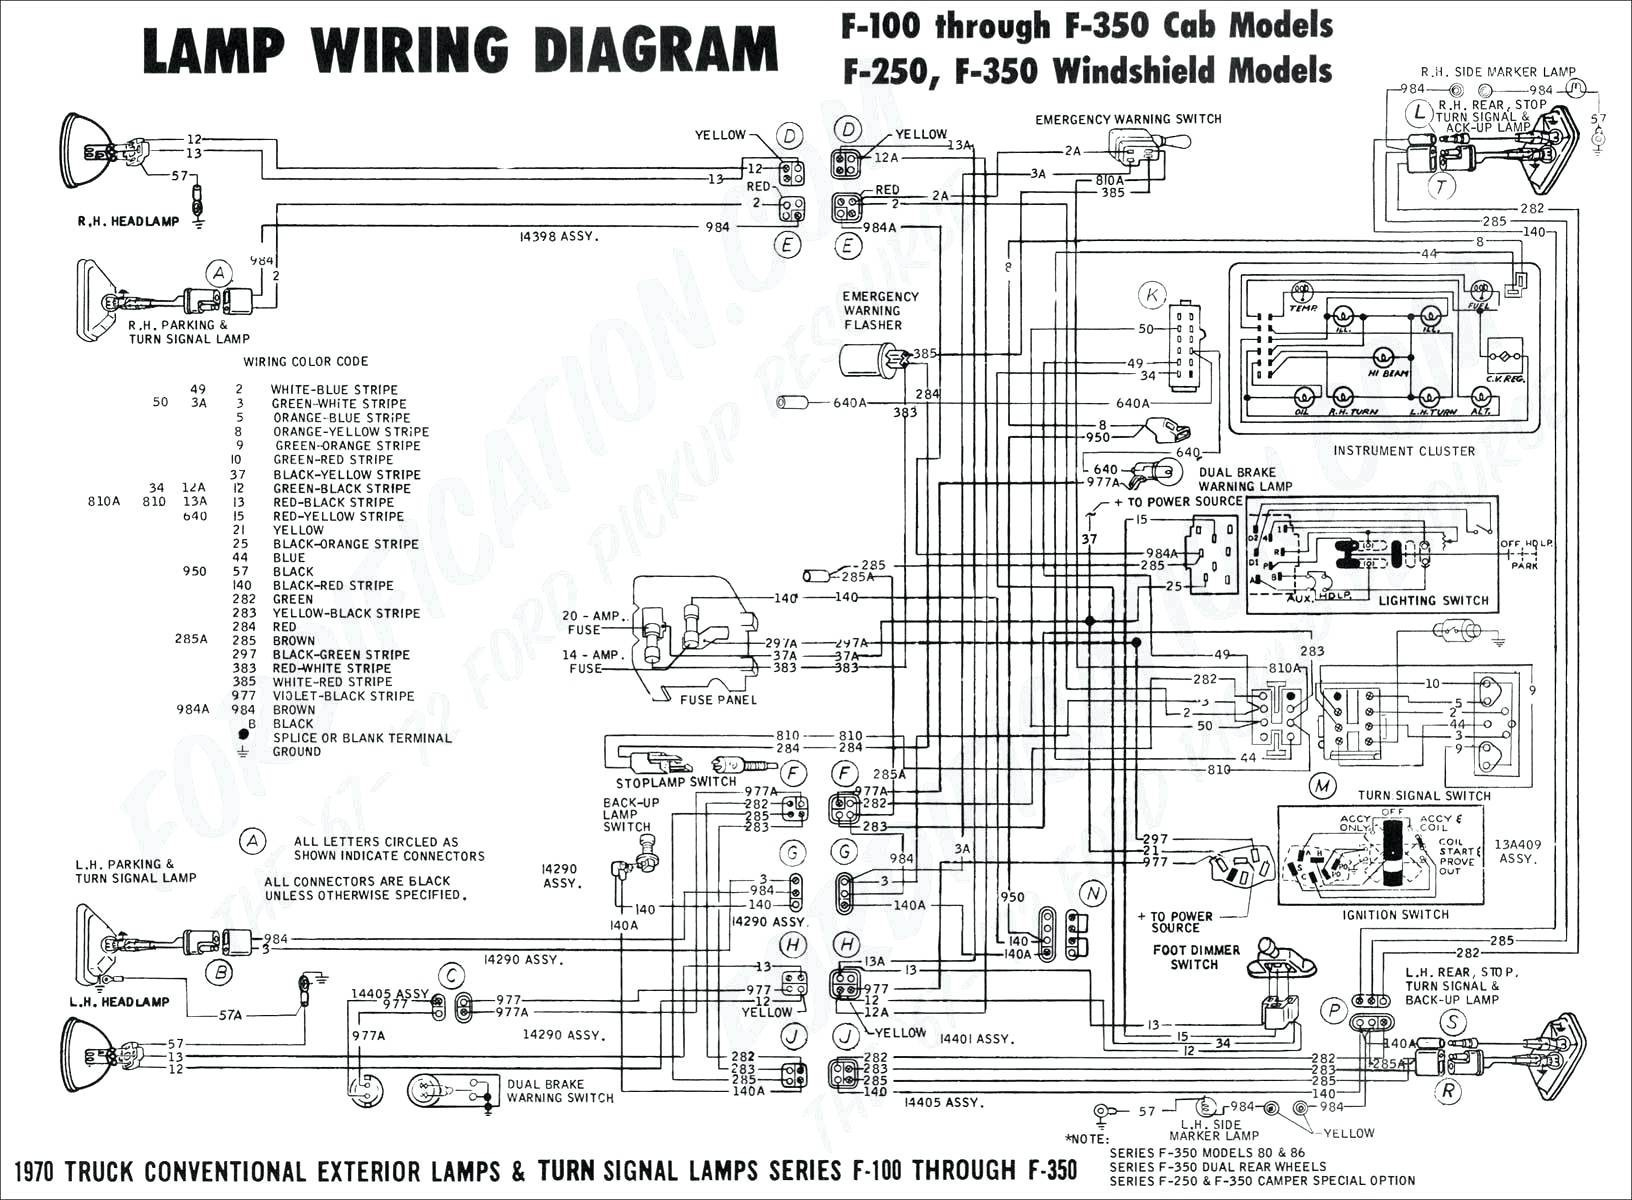 Chevy Truck Spark Plug Wires Diagram